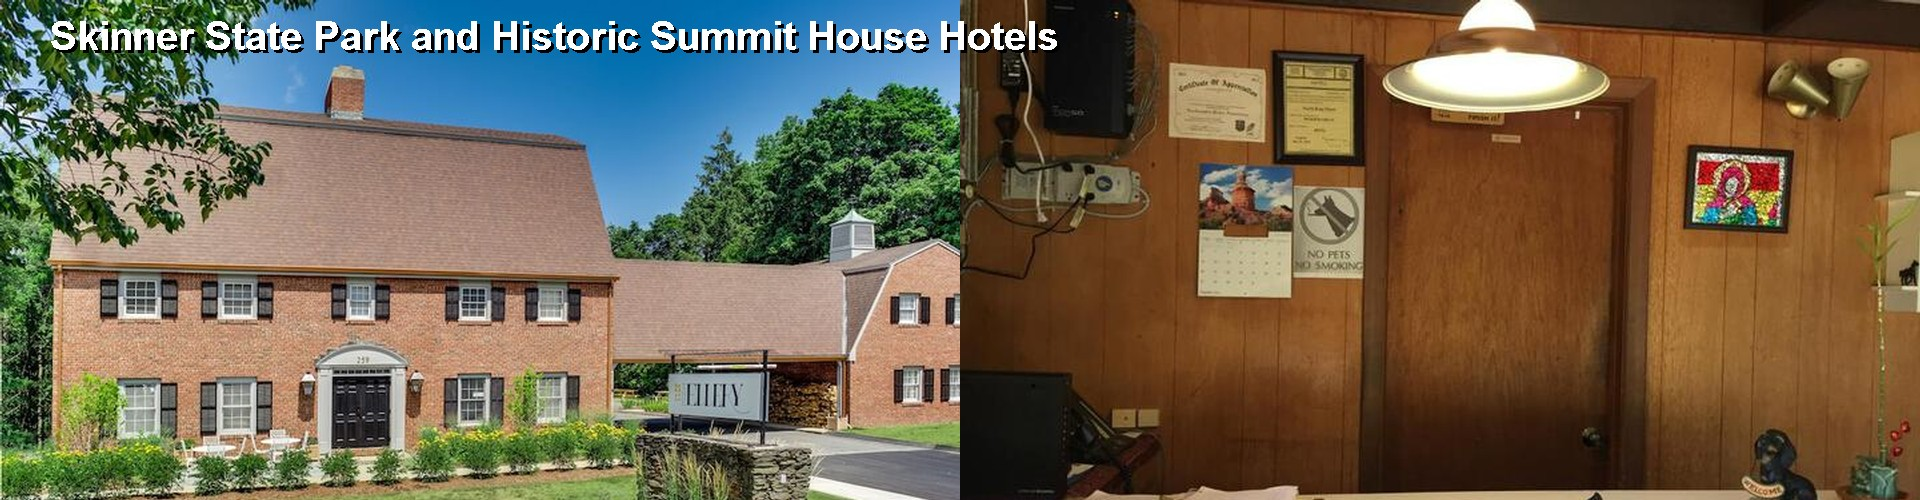 5 Best Hotels near Skinner State Park and Historic Summit House